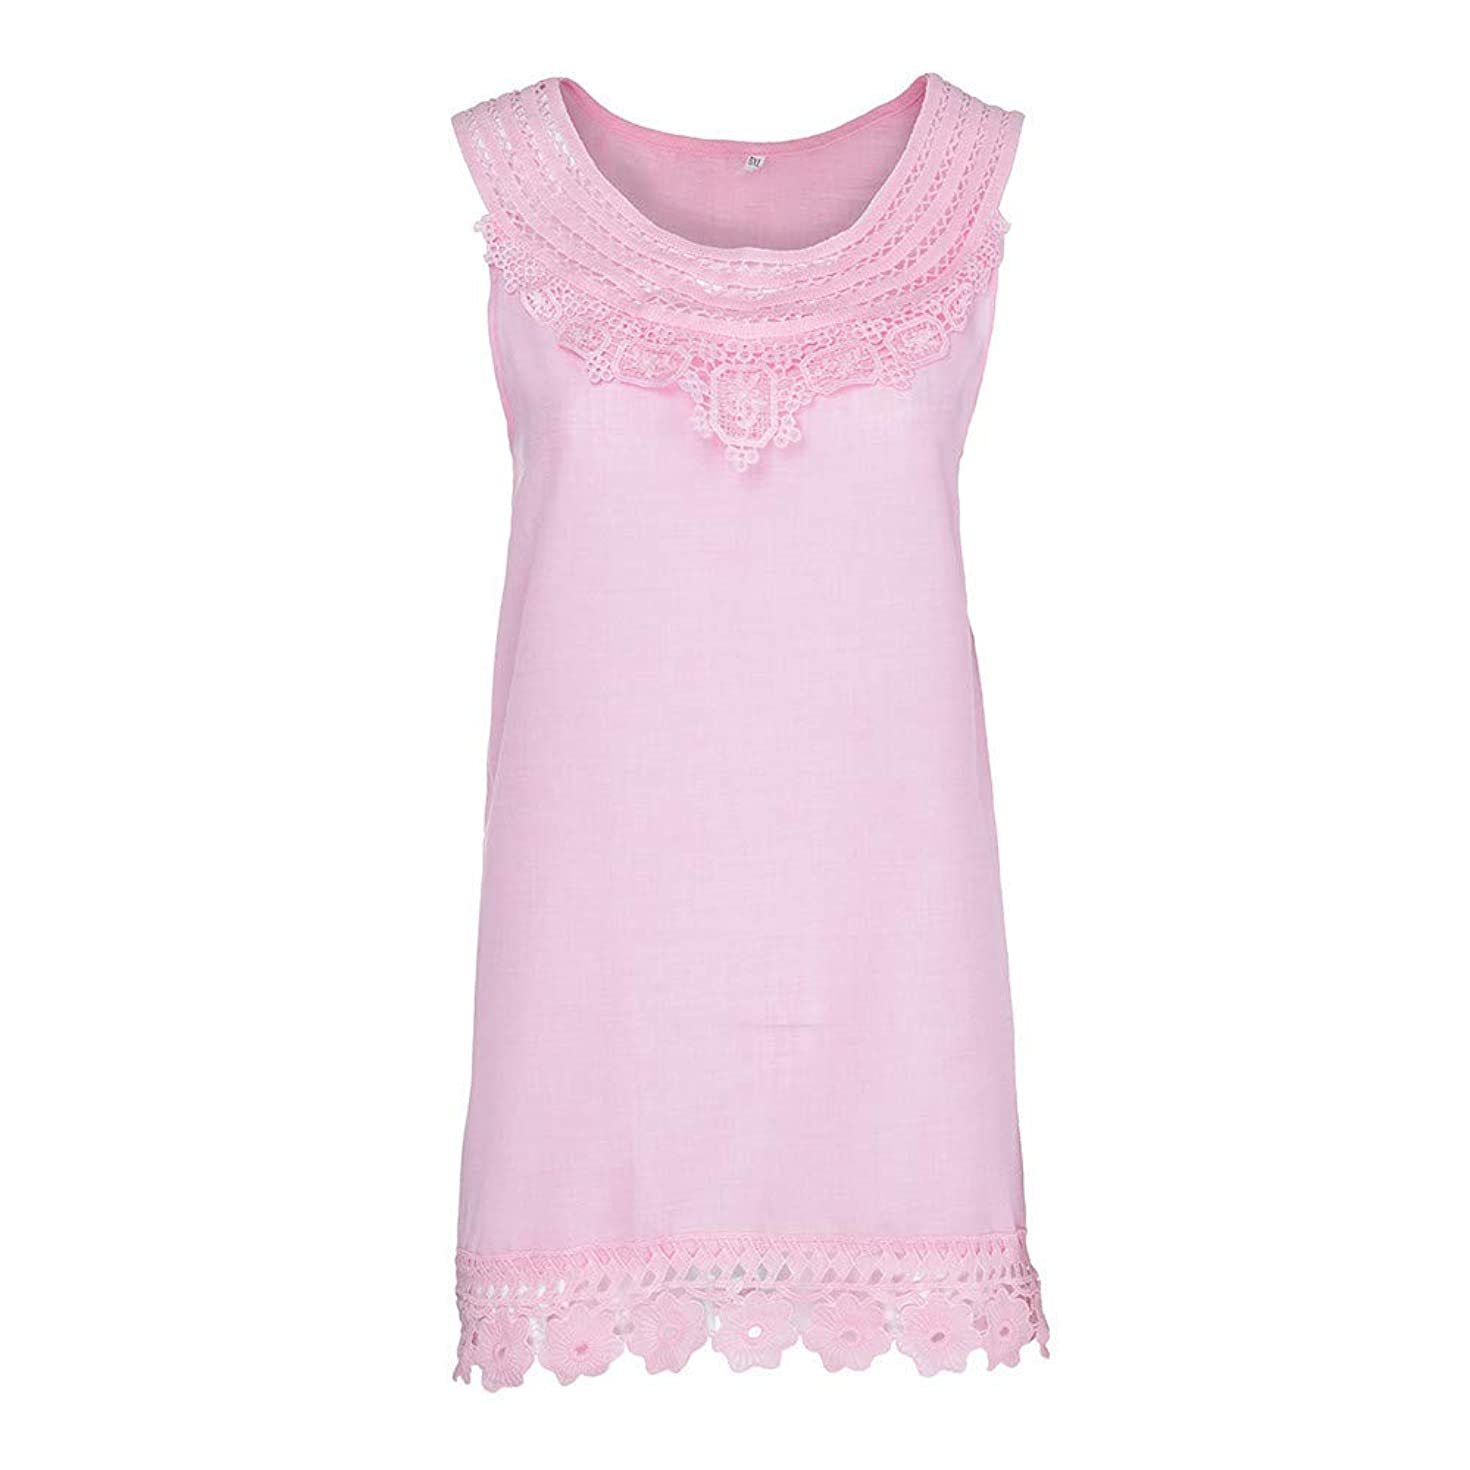 Sleeveless Tee Blouse for Women, Amiley Womens Lace Hollow Solid Short Sleeve Blouse Top Round Neck Trim T-Shirt S-5XL